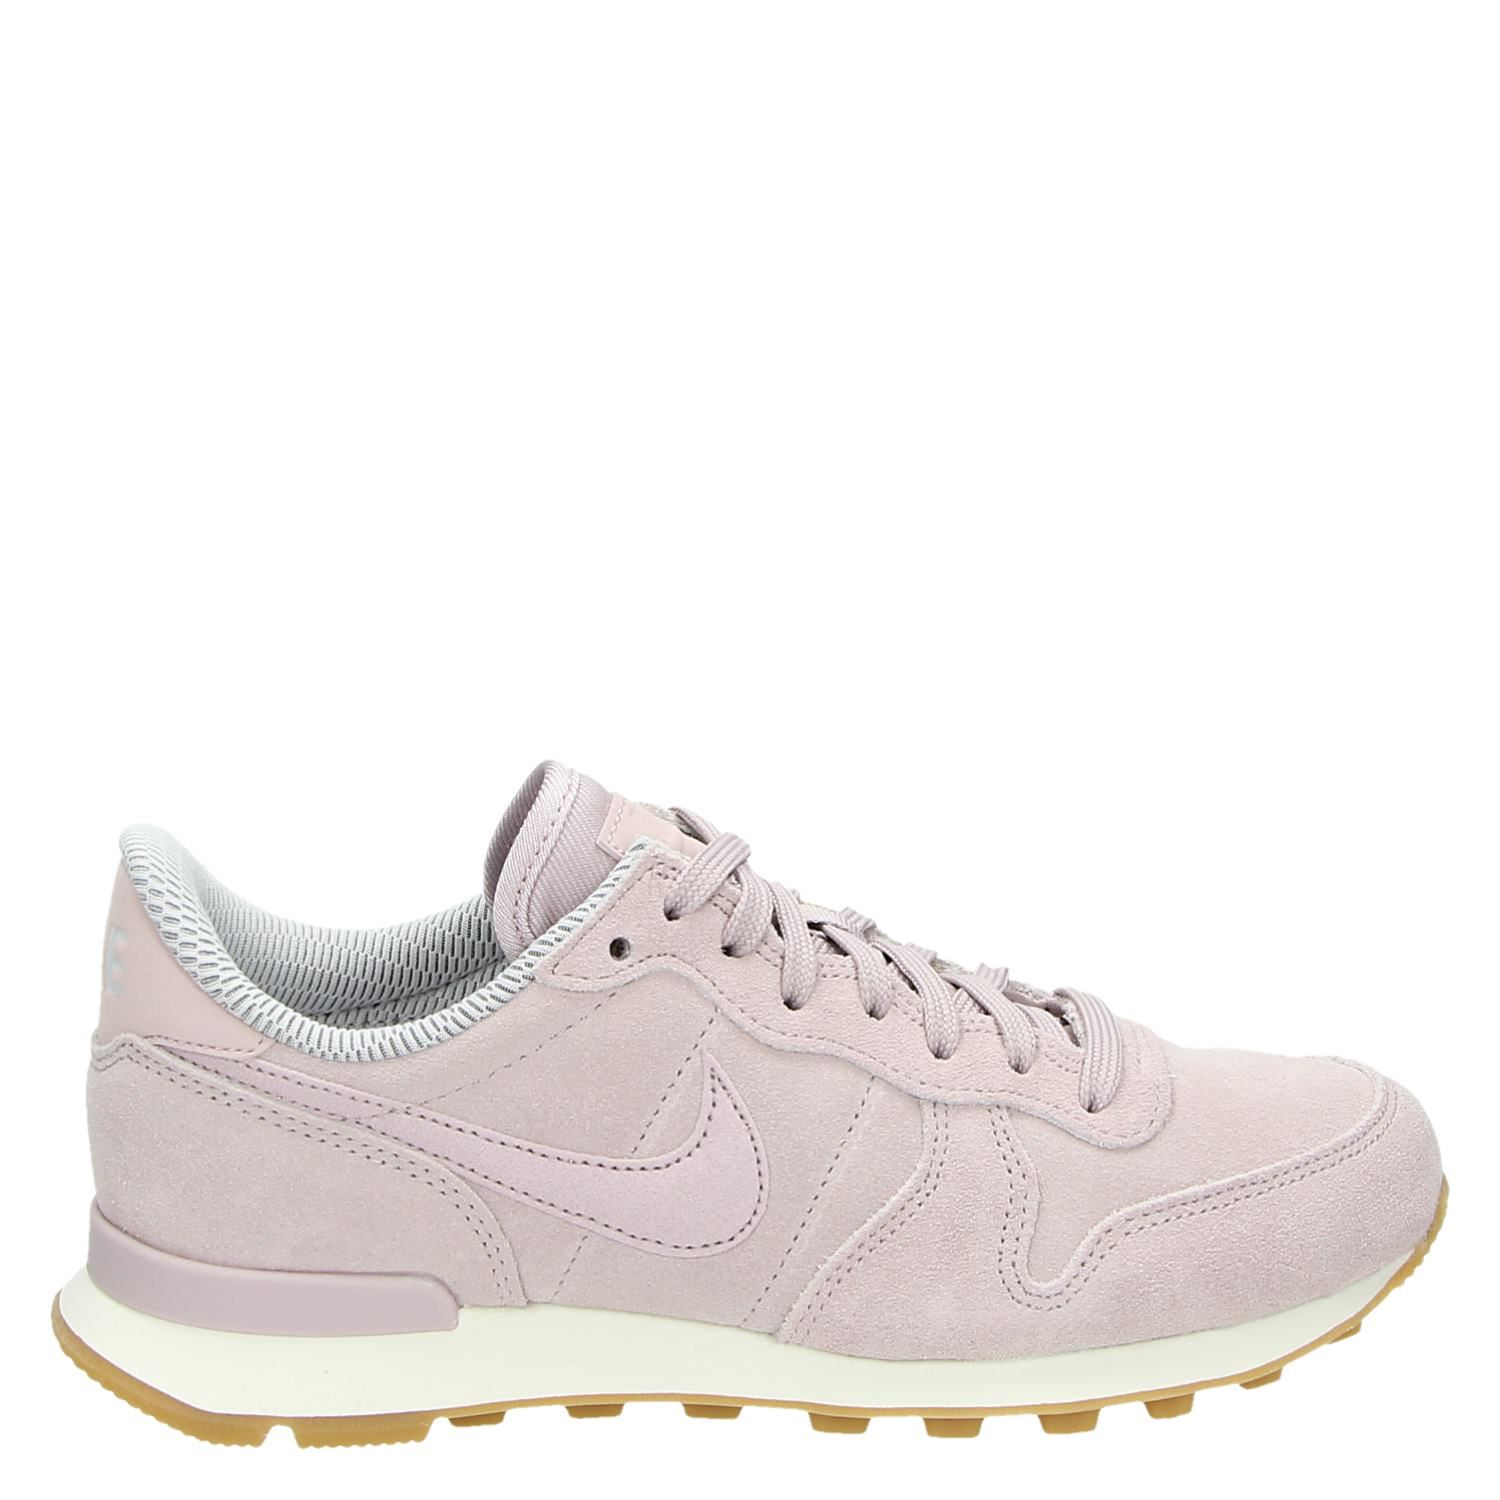 b05321f77f3 Nike Internationalis dames lage sneakers roze